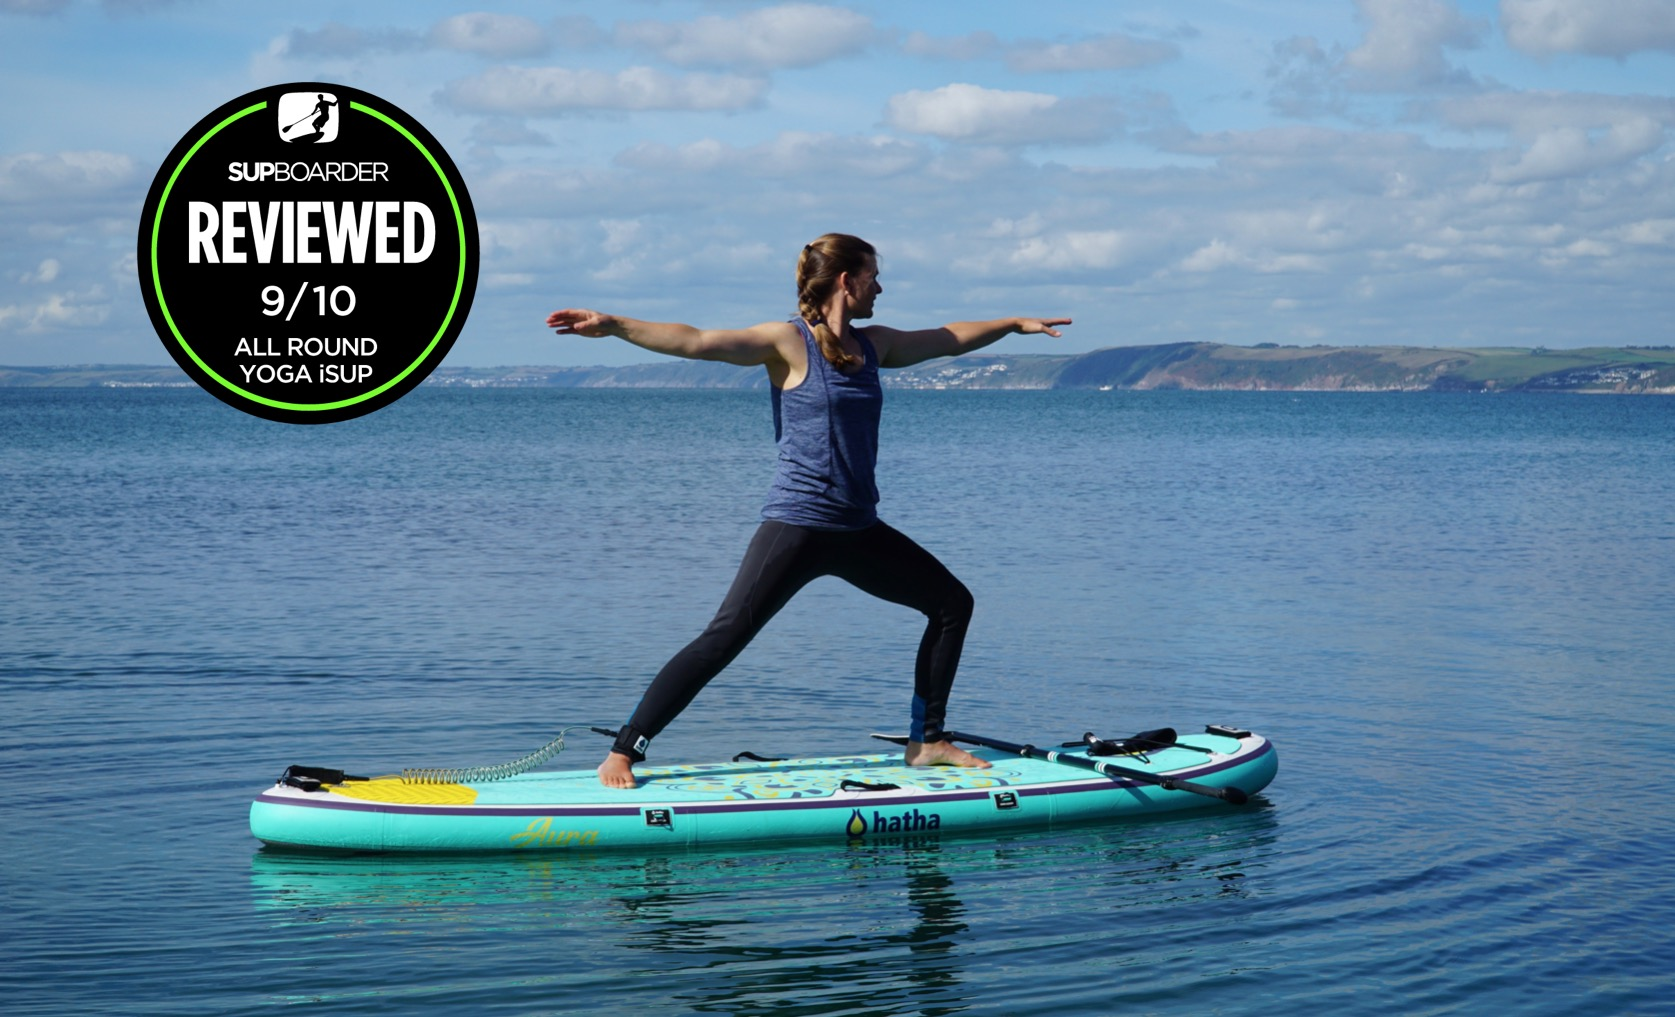 Hatha Aura 10'4'' / All round yoga iSUP Video review